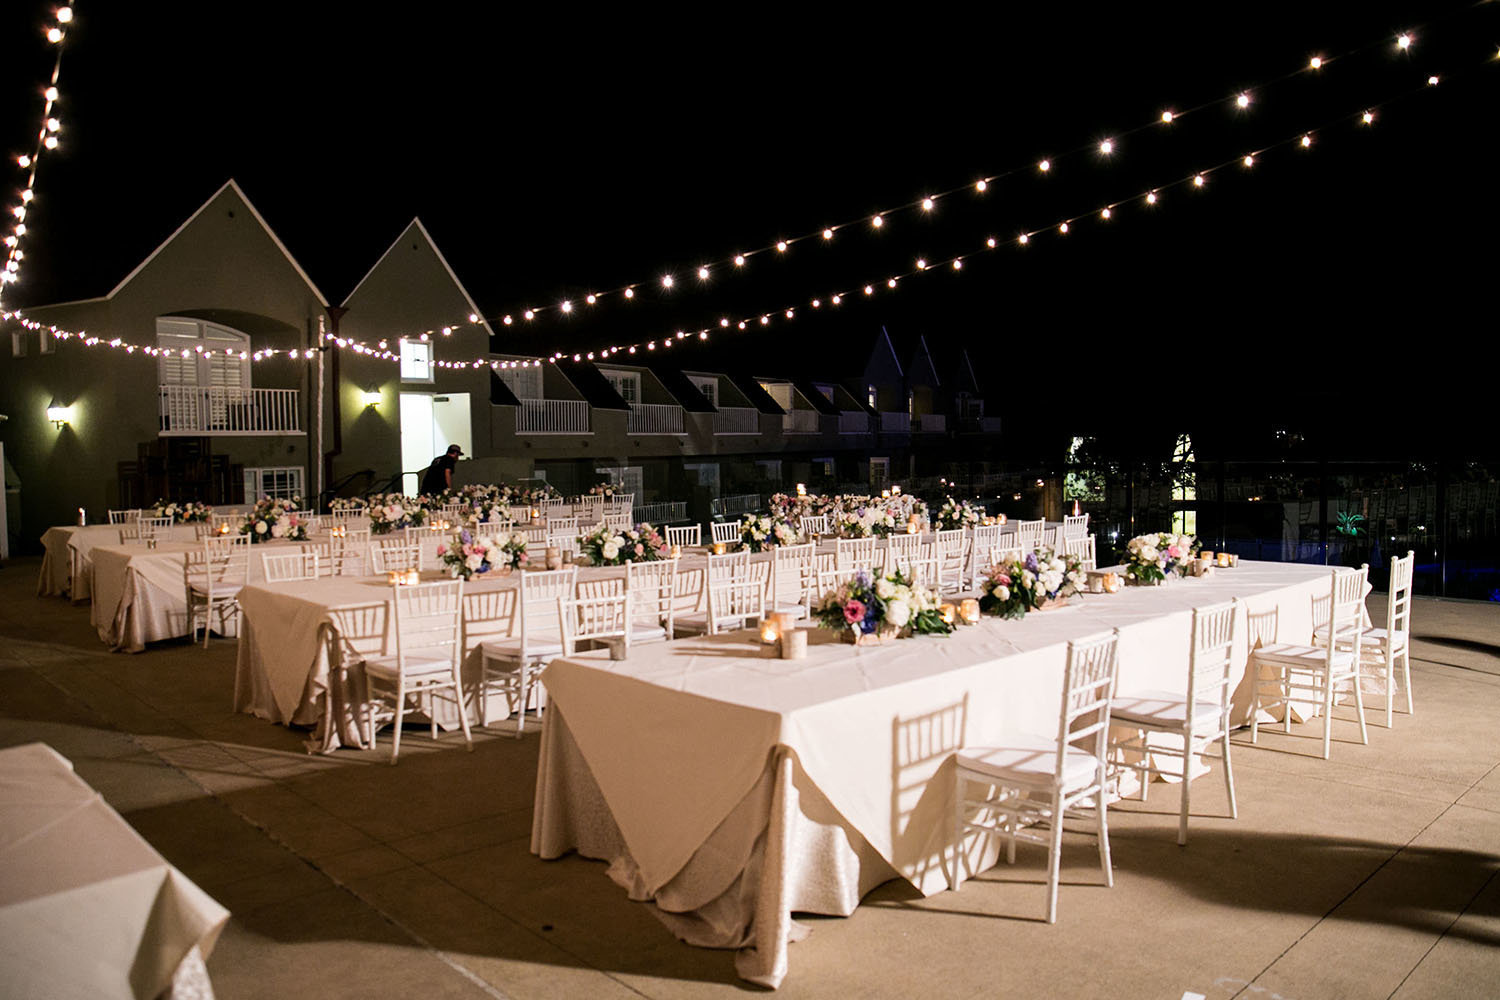 Wedding Reception table settings at L'Auberge Del Mar